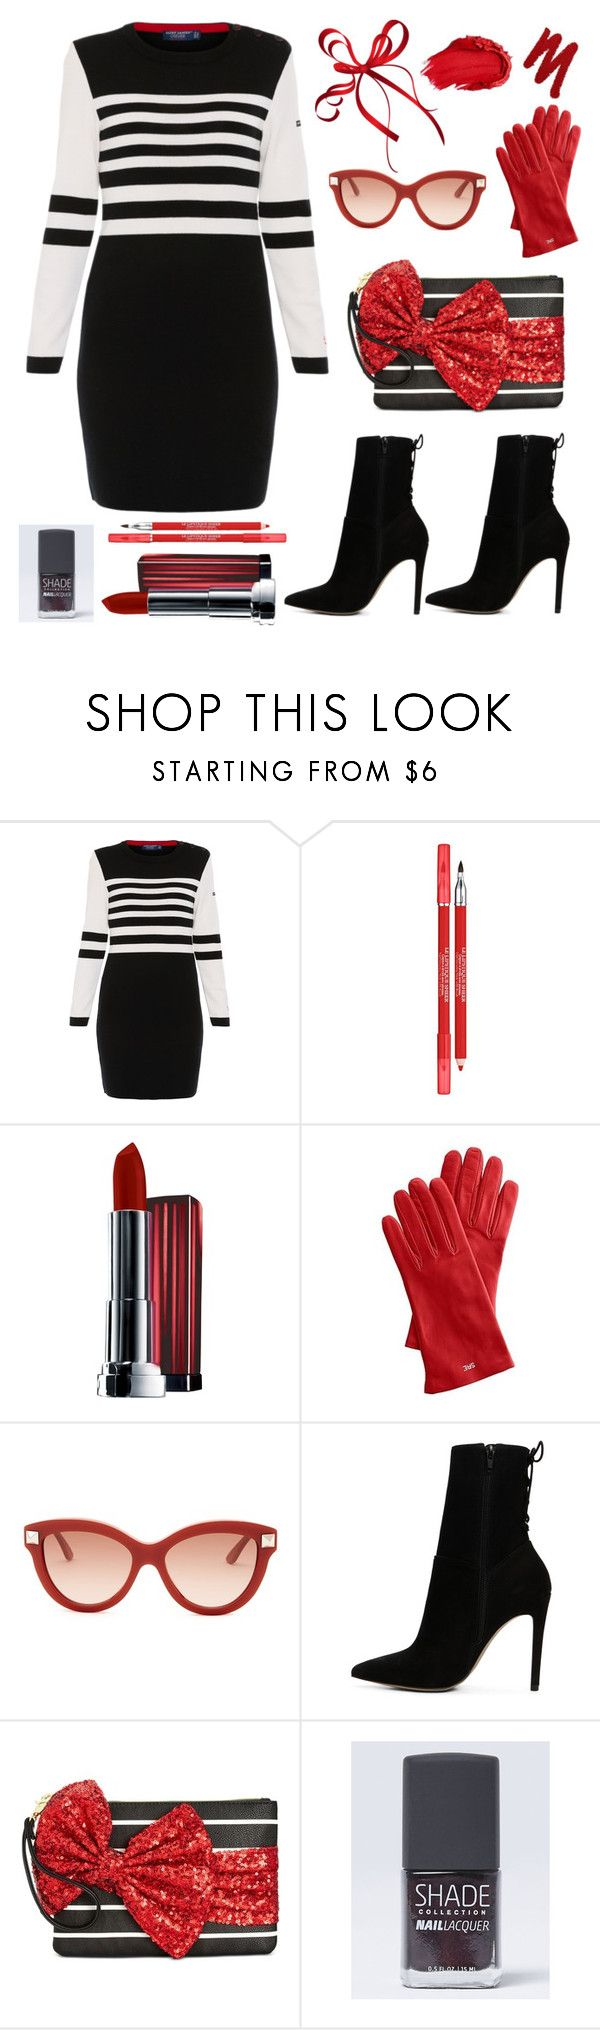 """""""Shade"""" by felicitysparks ❤ liked on Polyvore featuring Saint James, Lancôme, Maybelline, Urban Decay, Mark & Graham, Valentino, ALDO, Betsey Johnson and Lane Bryant"""